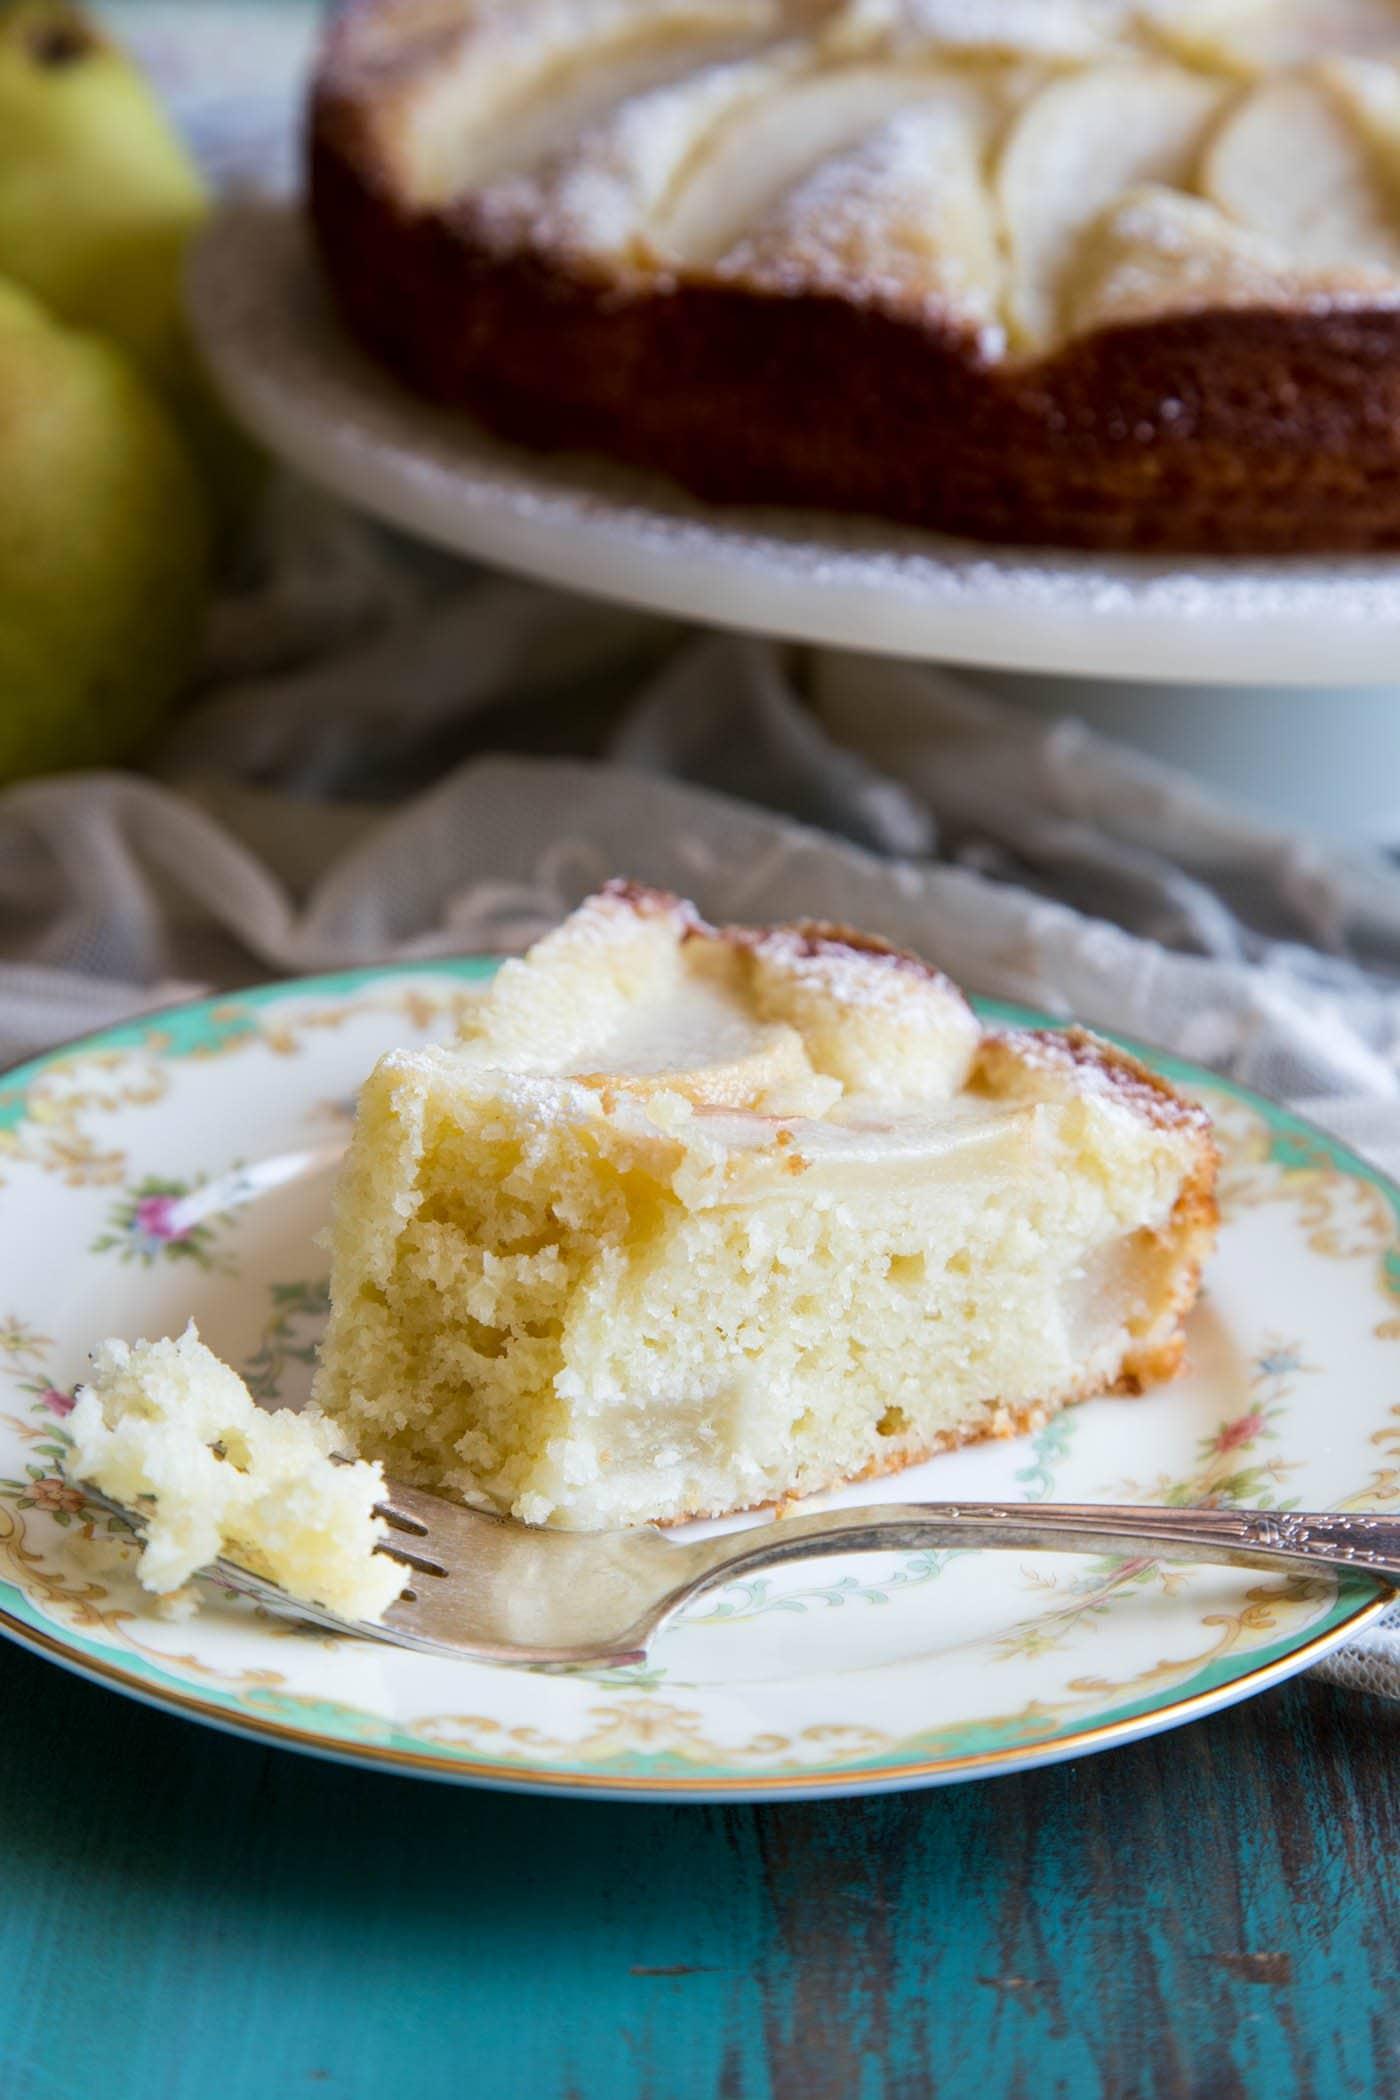 A slice of pear cake on a plate